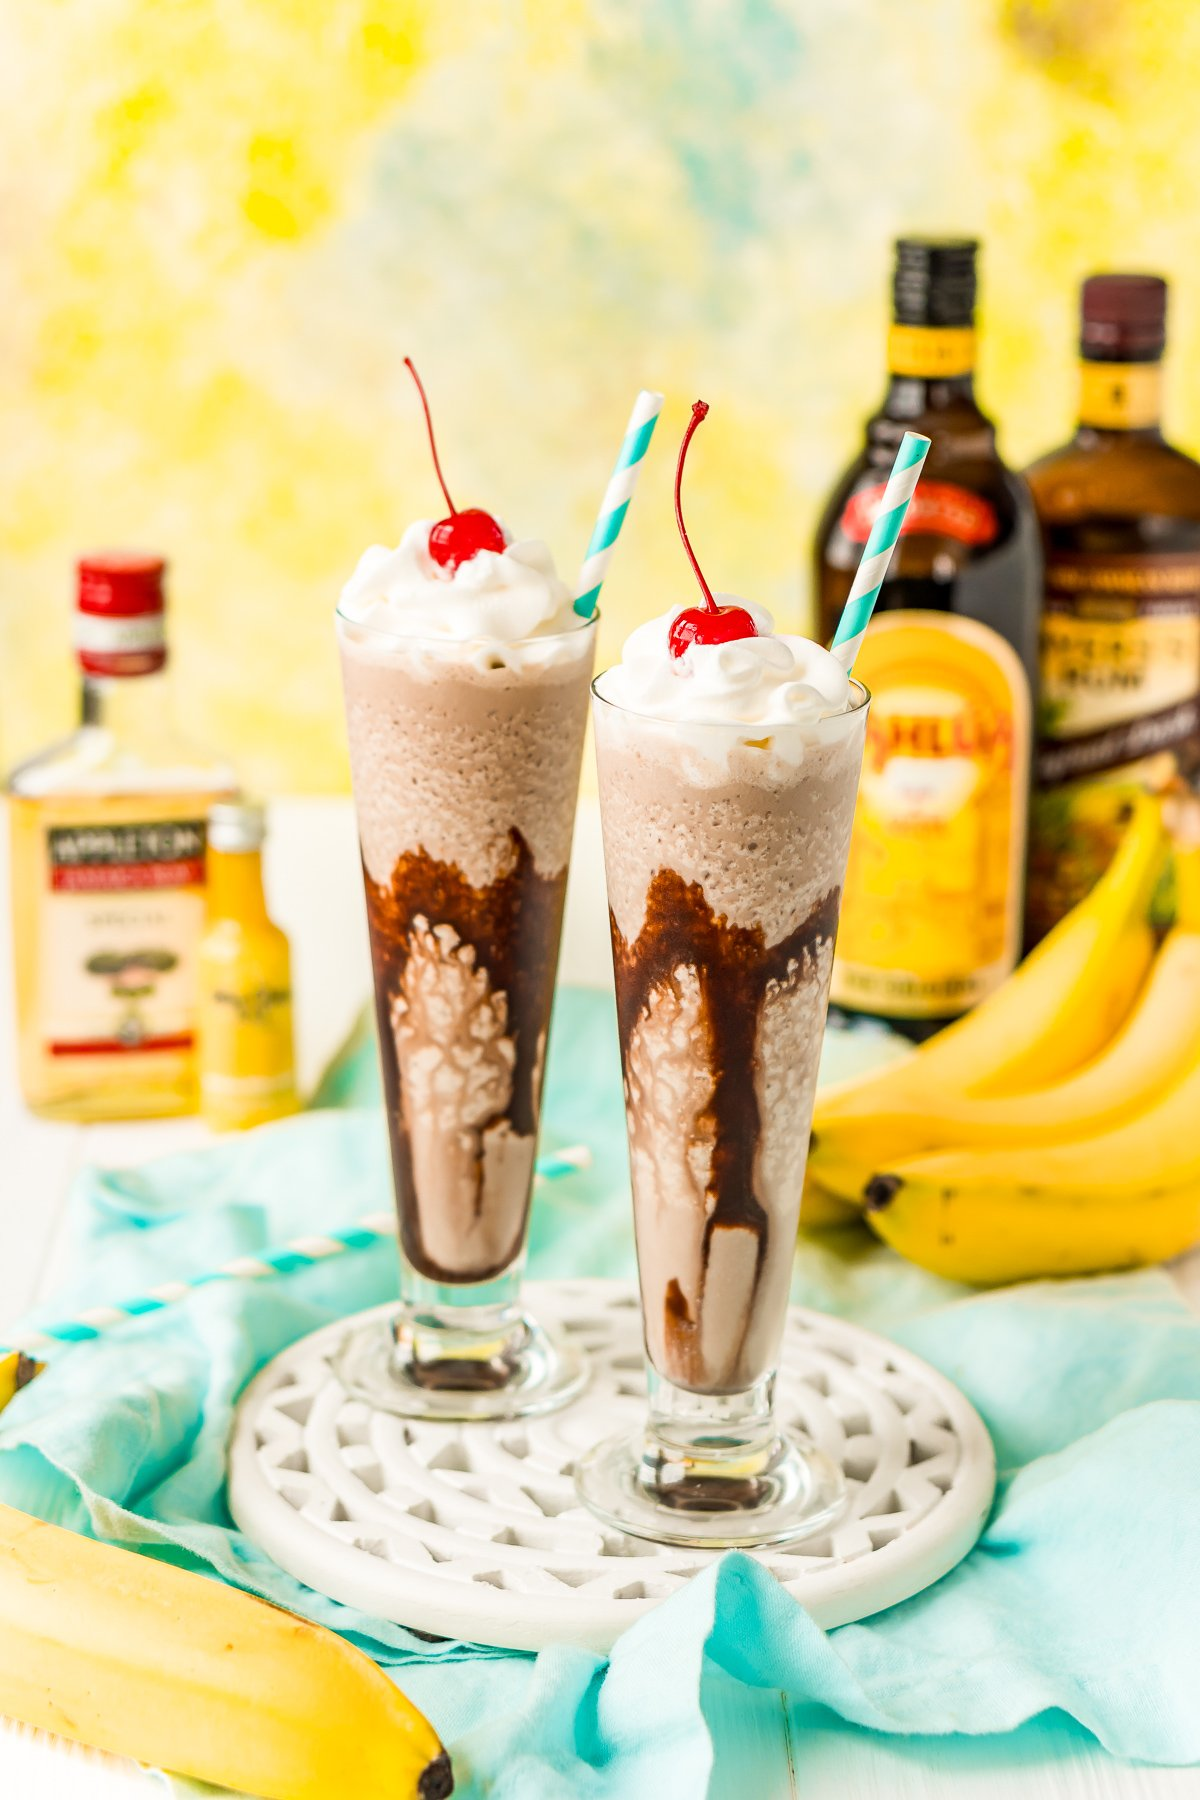 Two dirty banana drinks on a white wooden board with bottles of rum and bananas in the background.